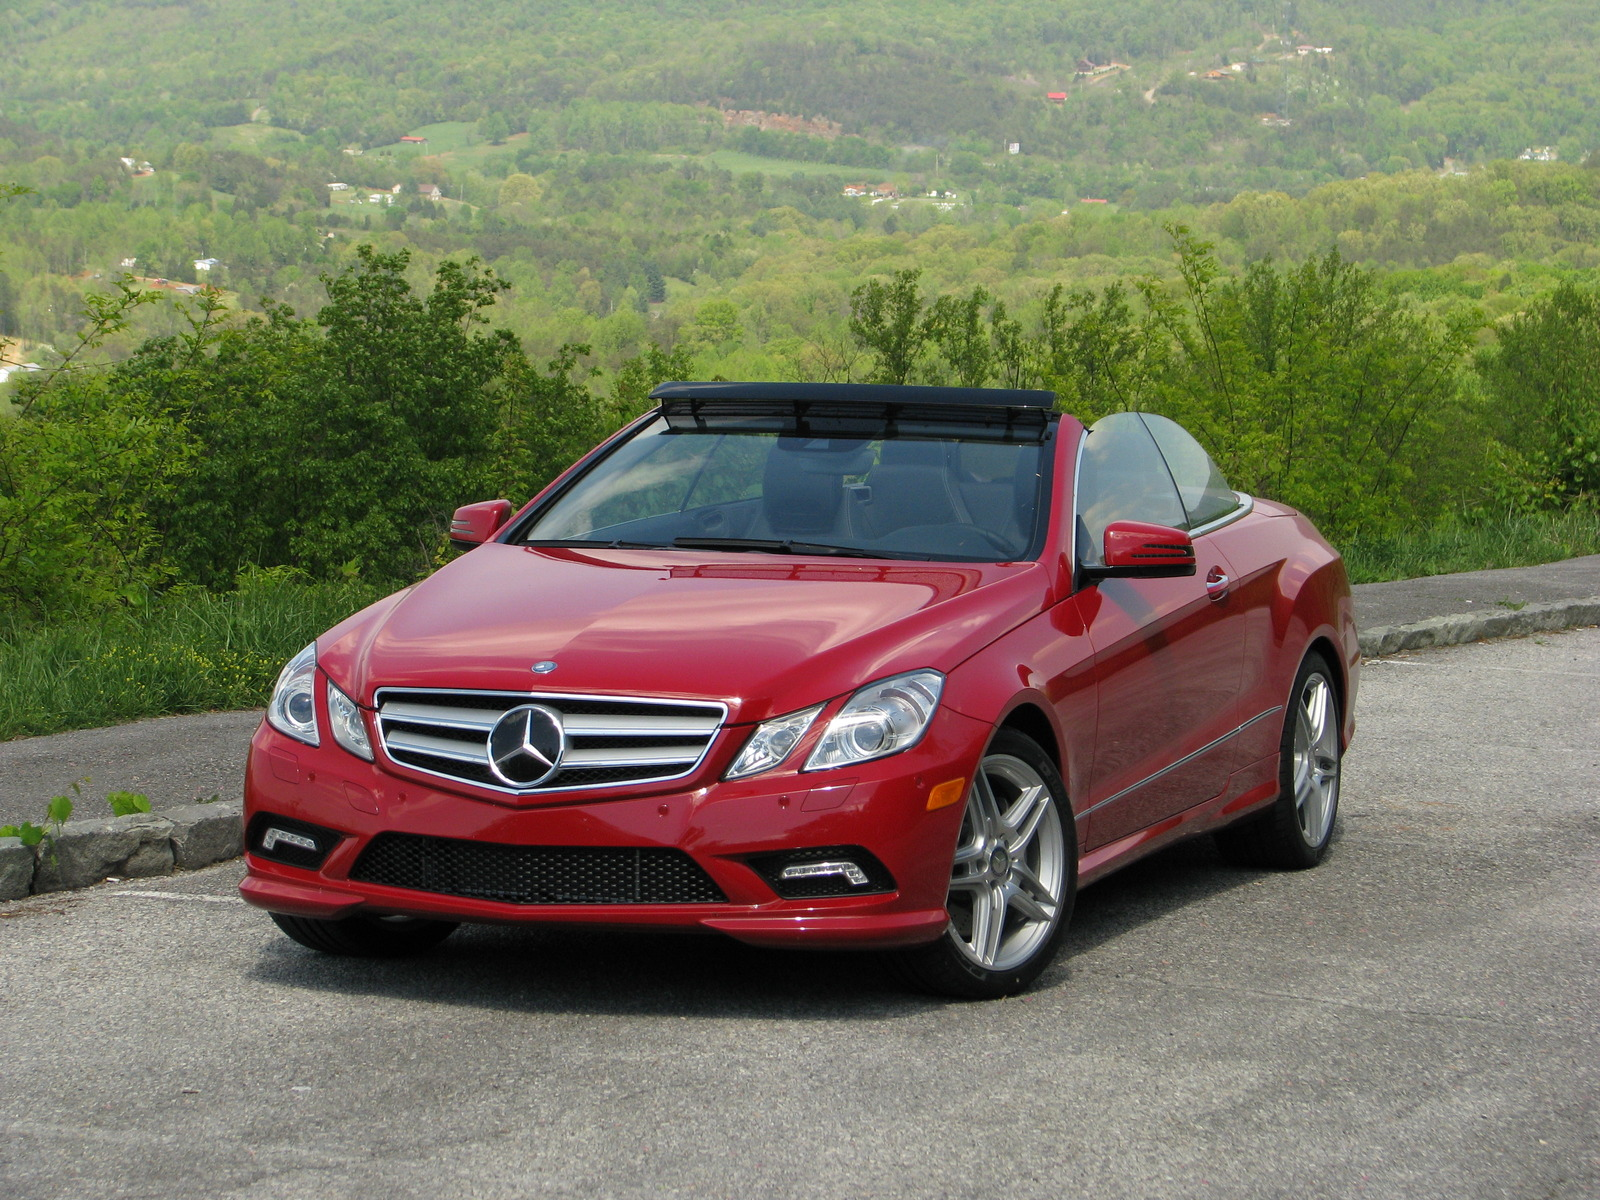 Mercedes benz issues recall for steering problem for Mercedes benz problems